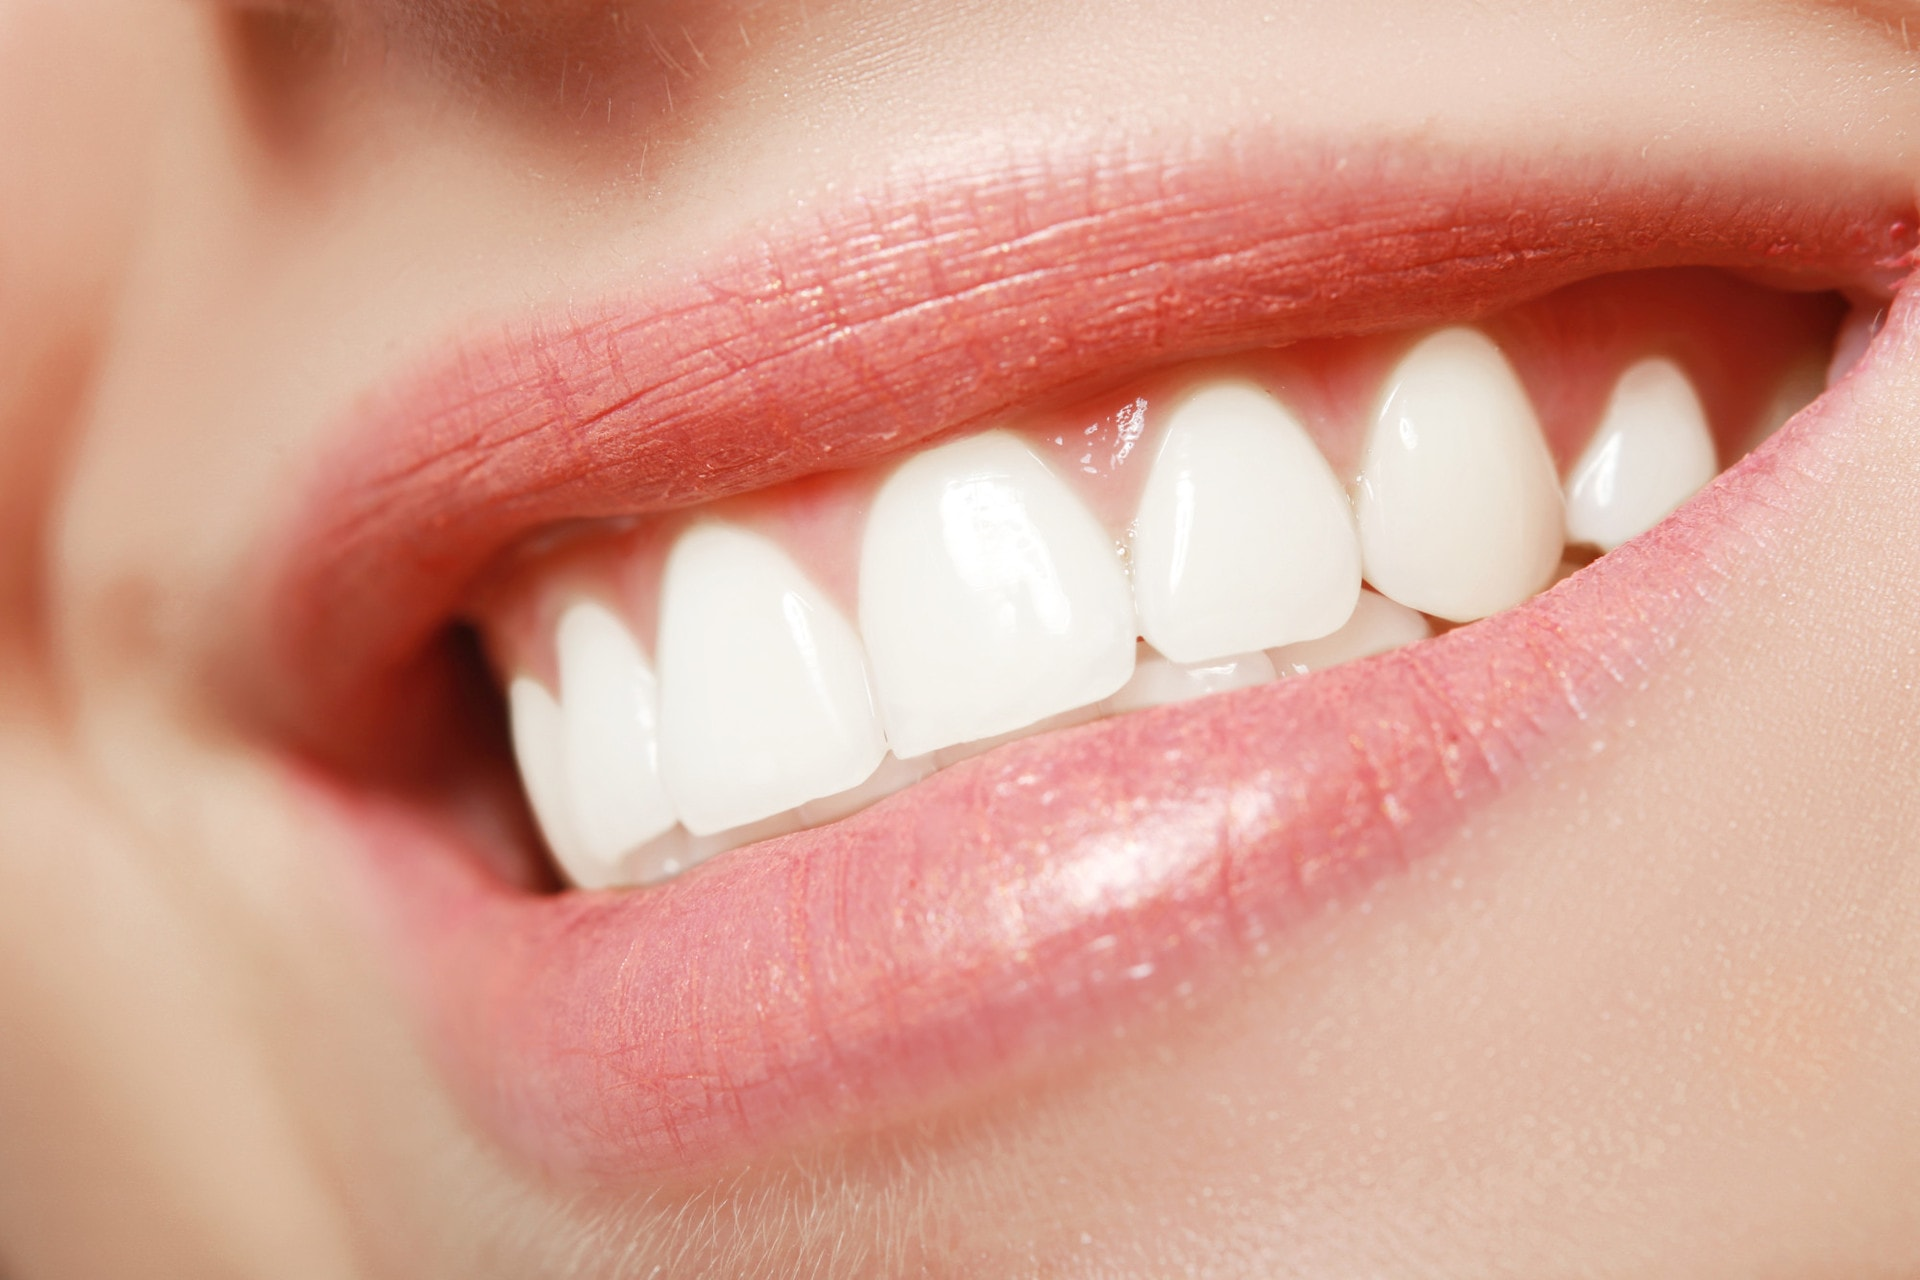 painless dentist procedures that leave you smiling